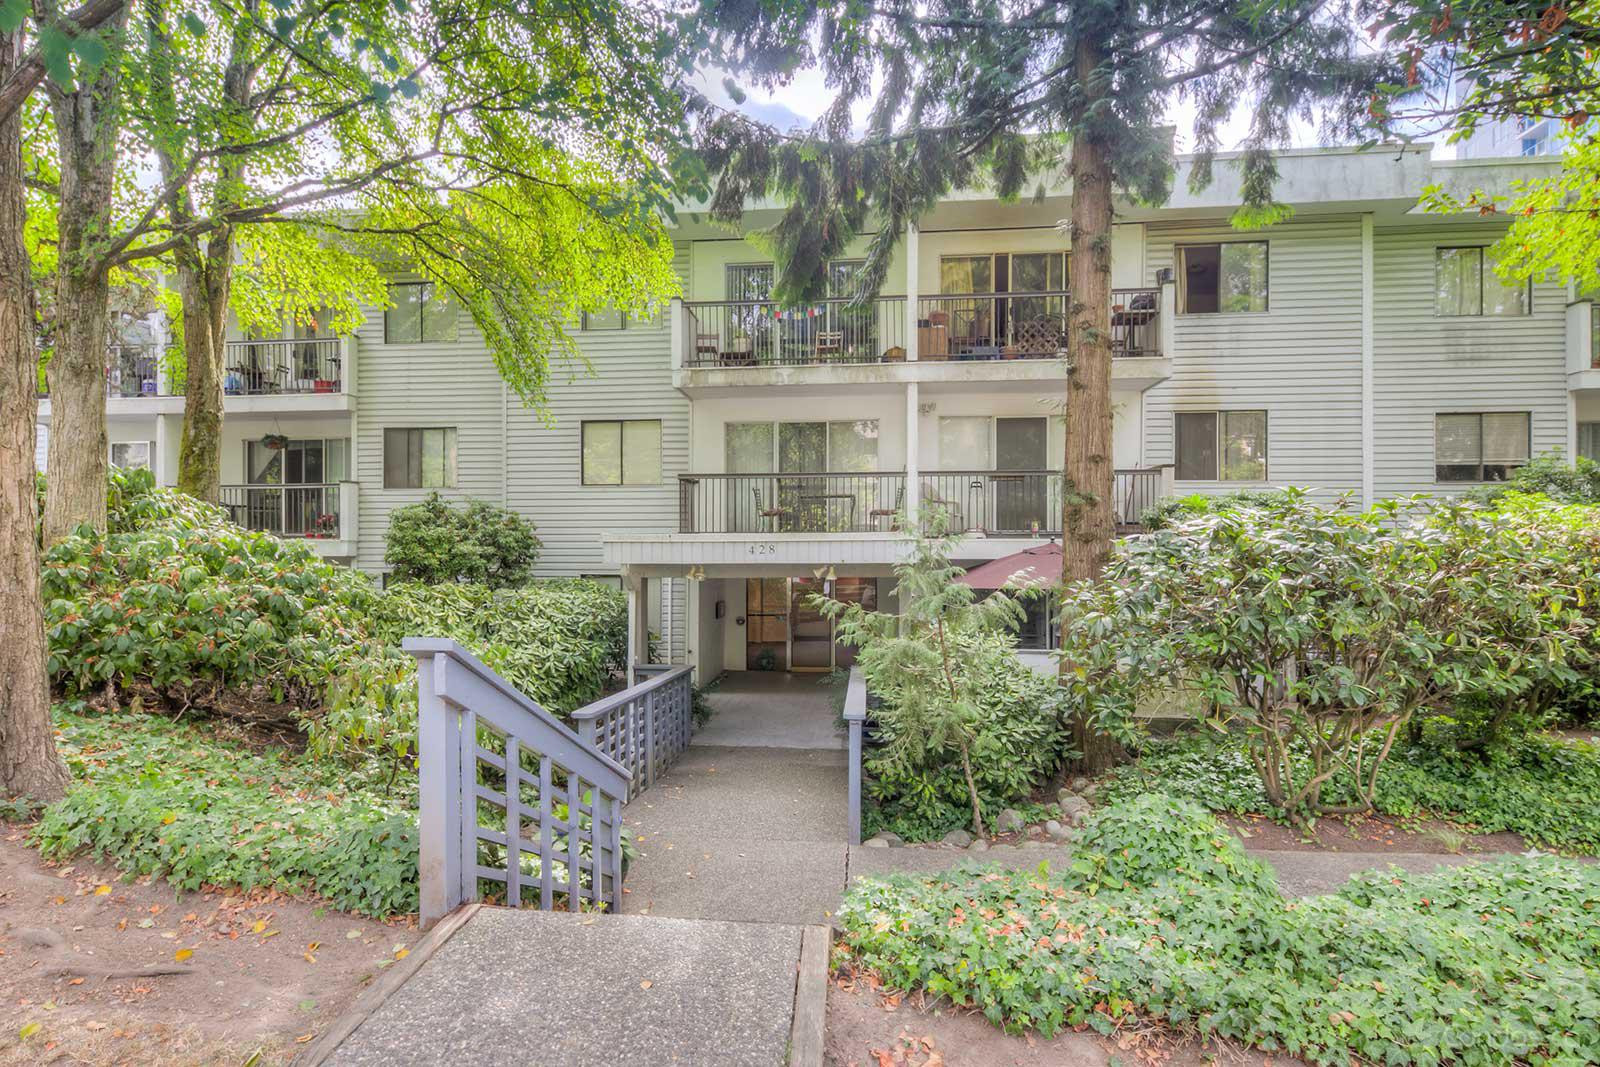 Shanley Manor at 428 Agnes St, New Westminster 1